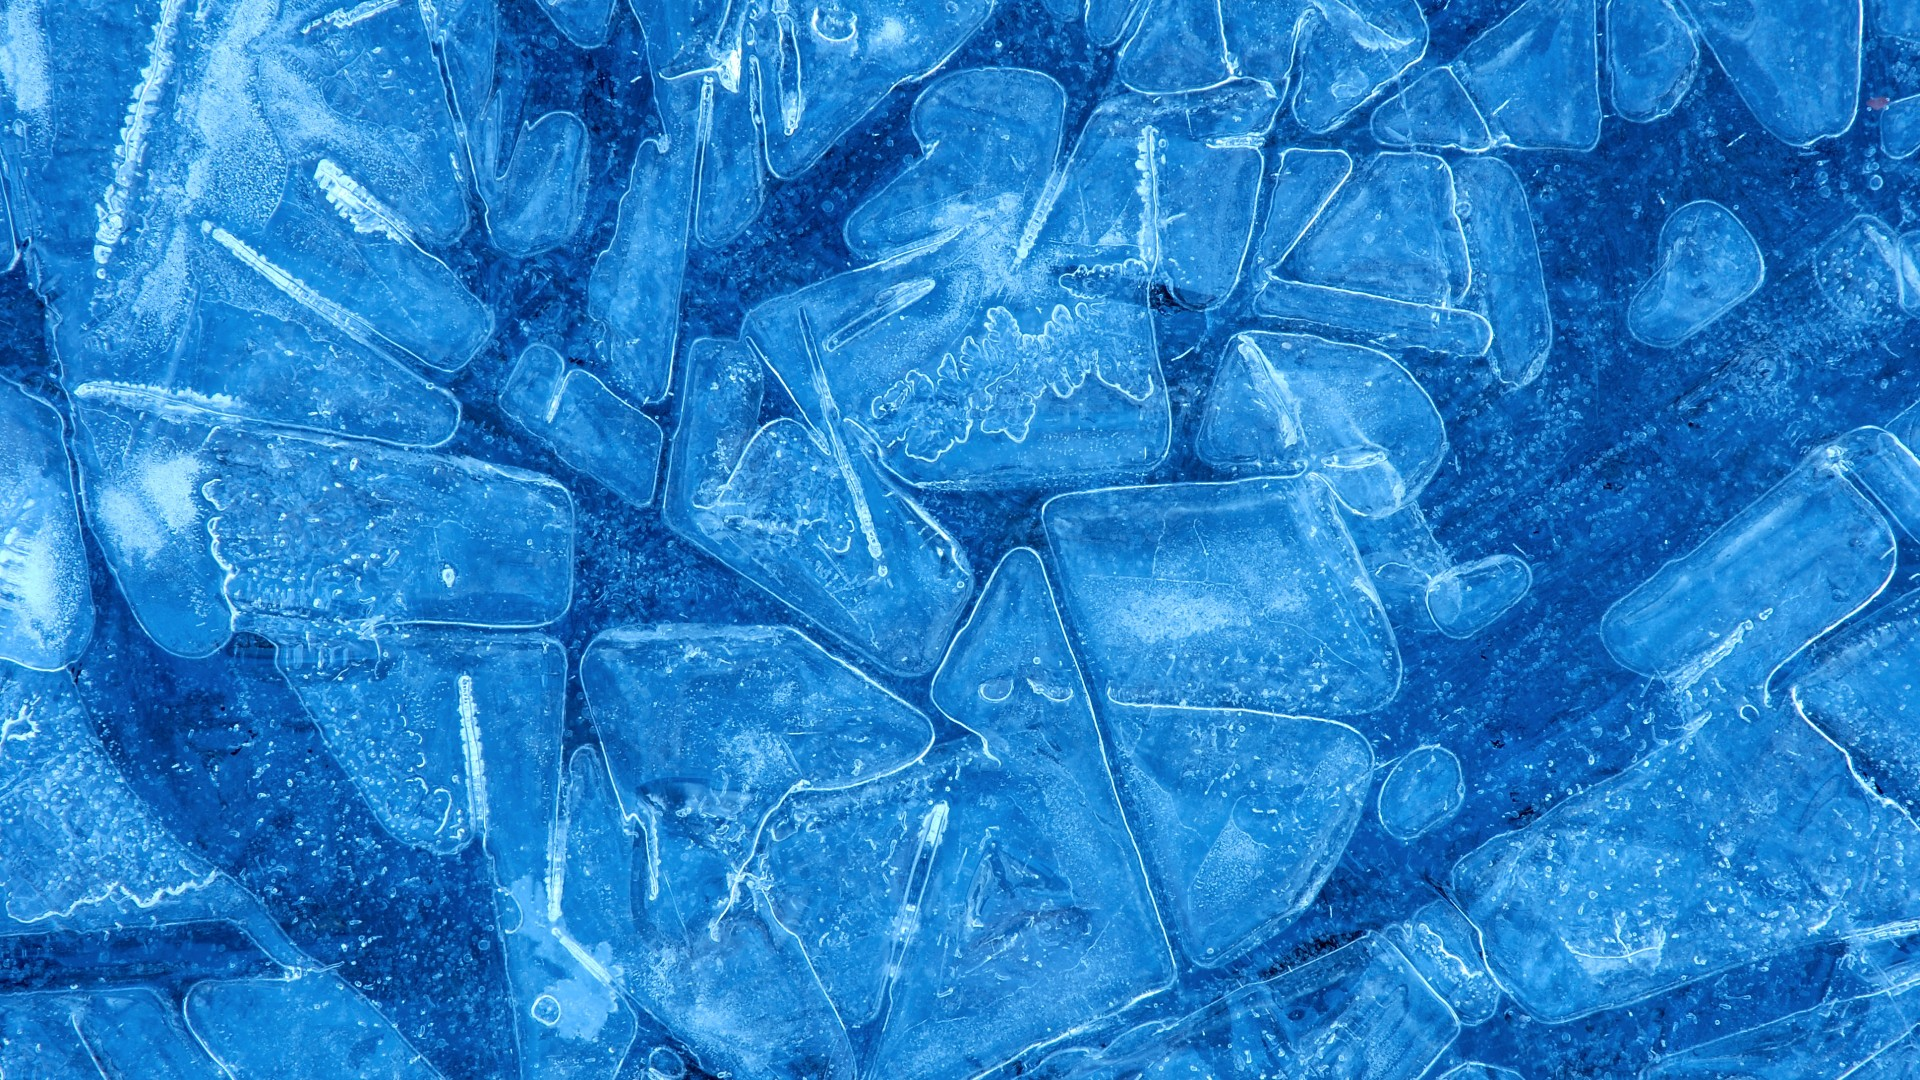 лед, 4k, 5k, фон, голубой, ice, 4k, 5k wallpaper, pattern, blue, background (horizontal)